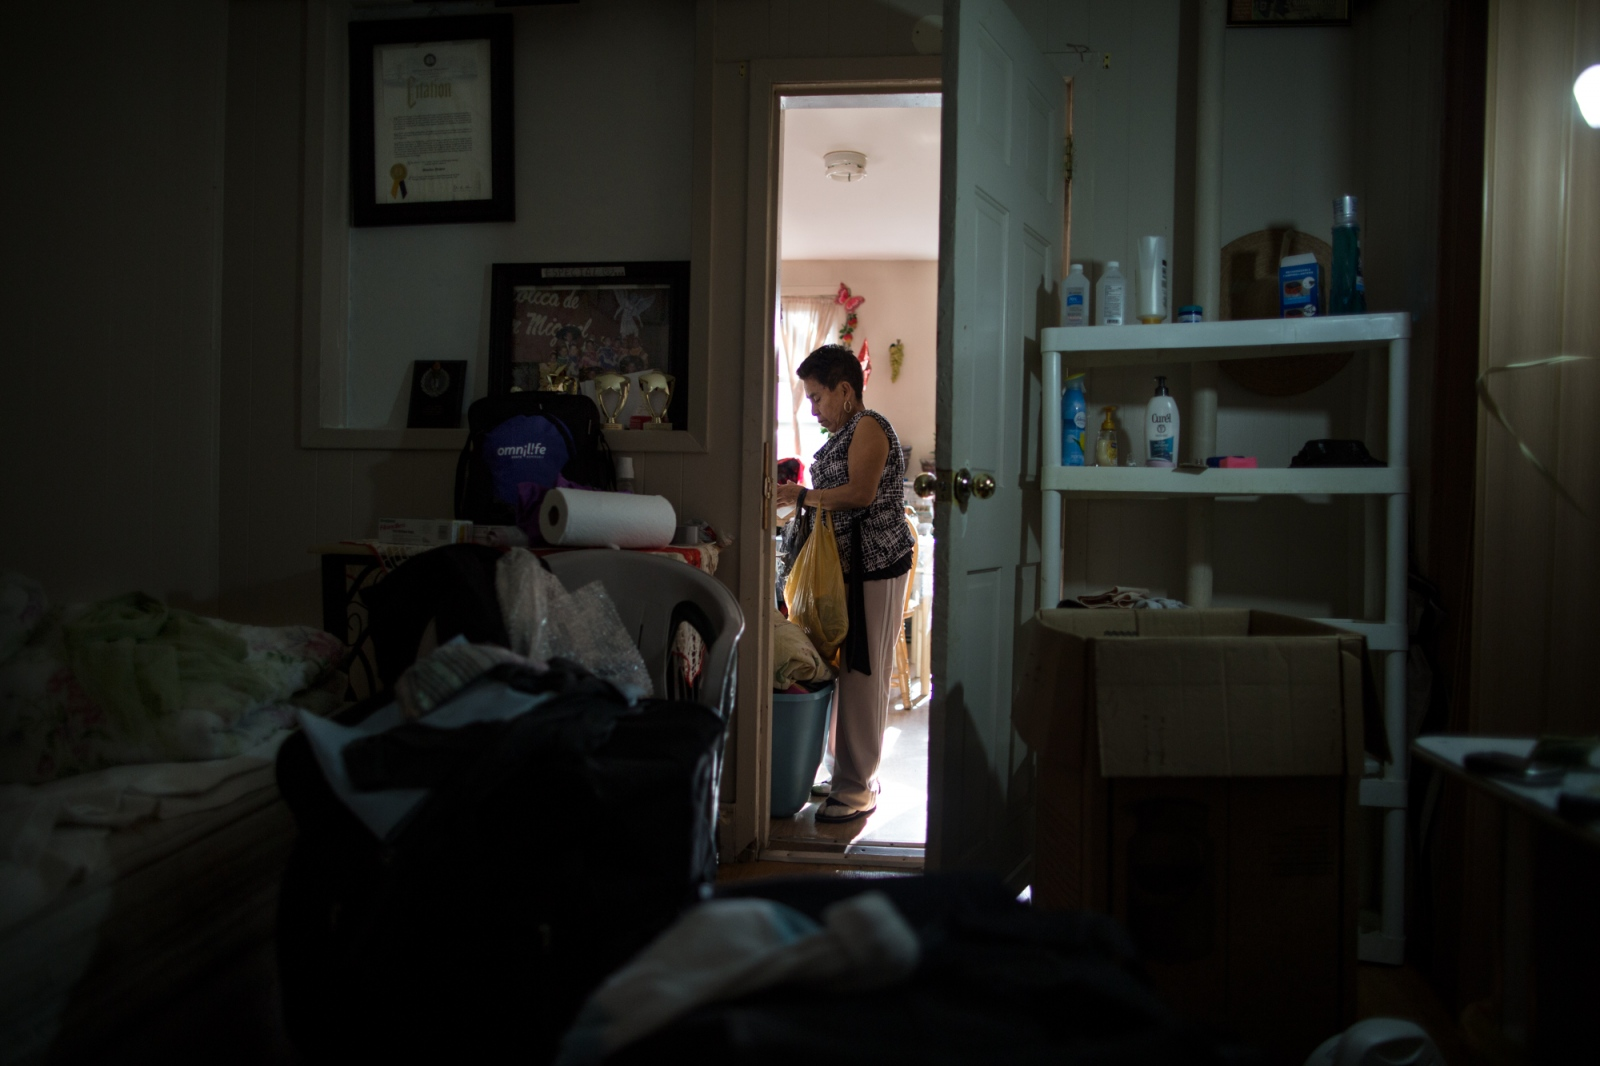 Gisela cleaning her house in Sunset Park, Brooklyn, New York, 2016.